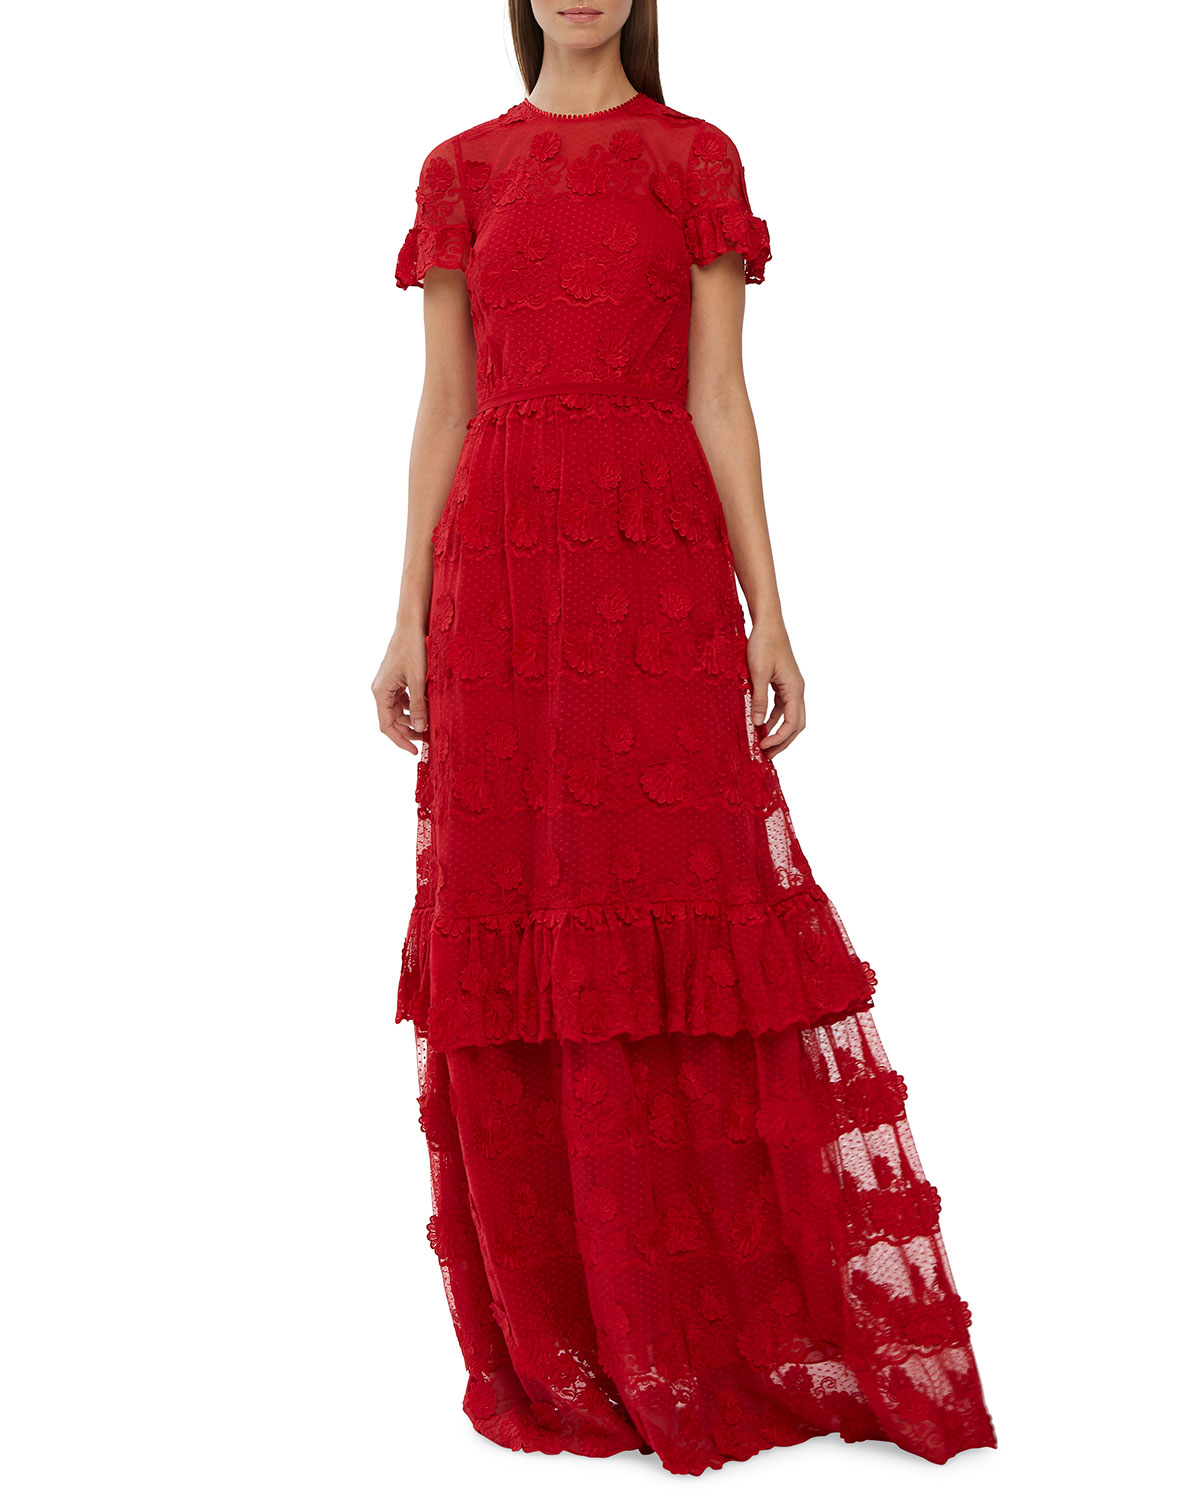 665ddfce6af Ml Monique Lhuillier High-Neck Short-Sleeve Lace Dress In Flame